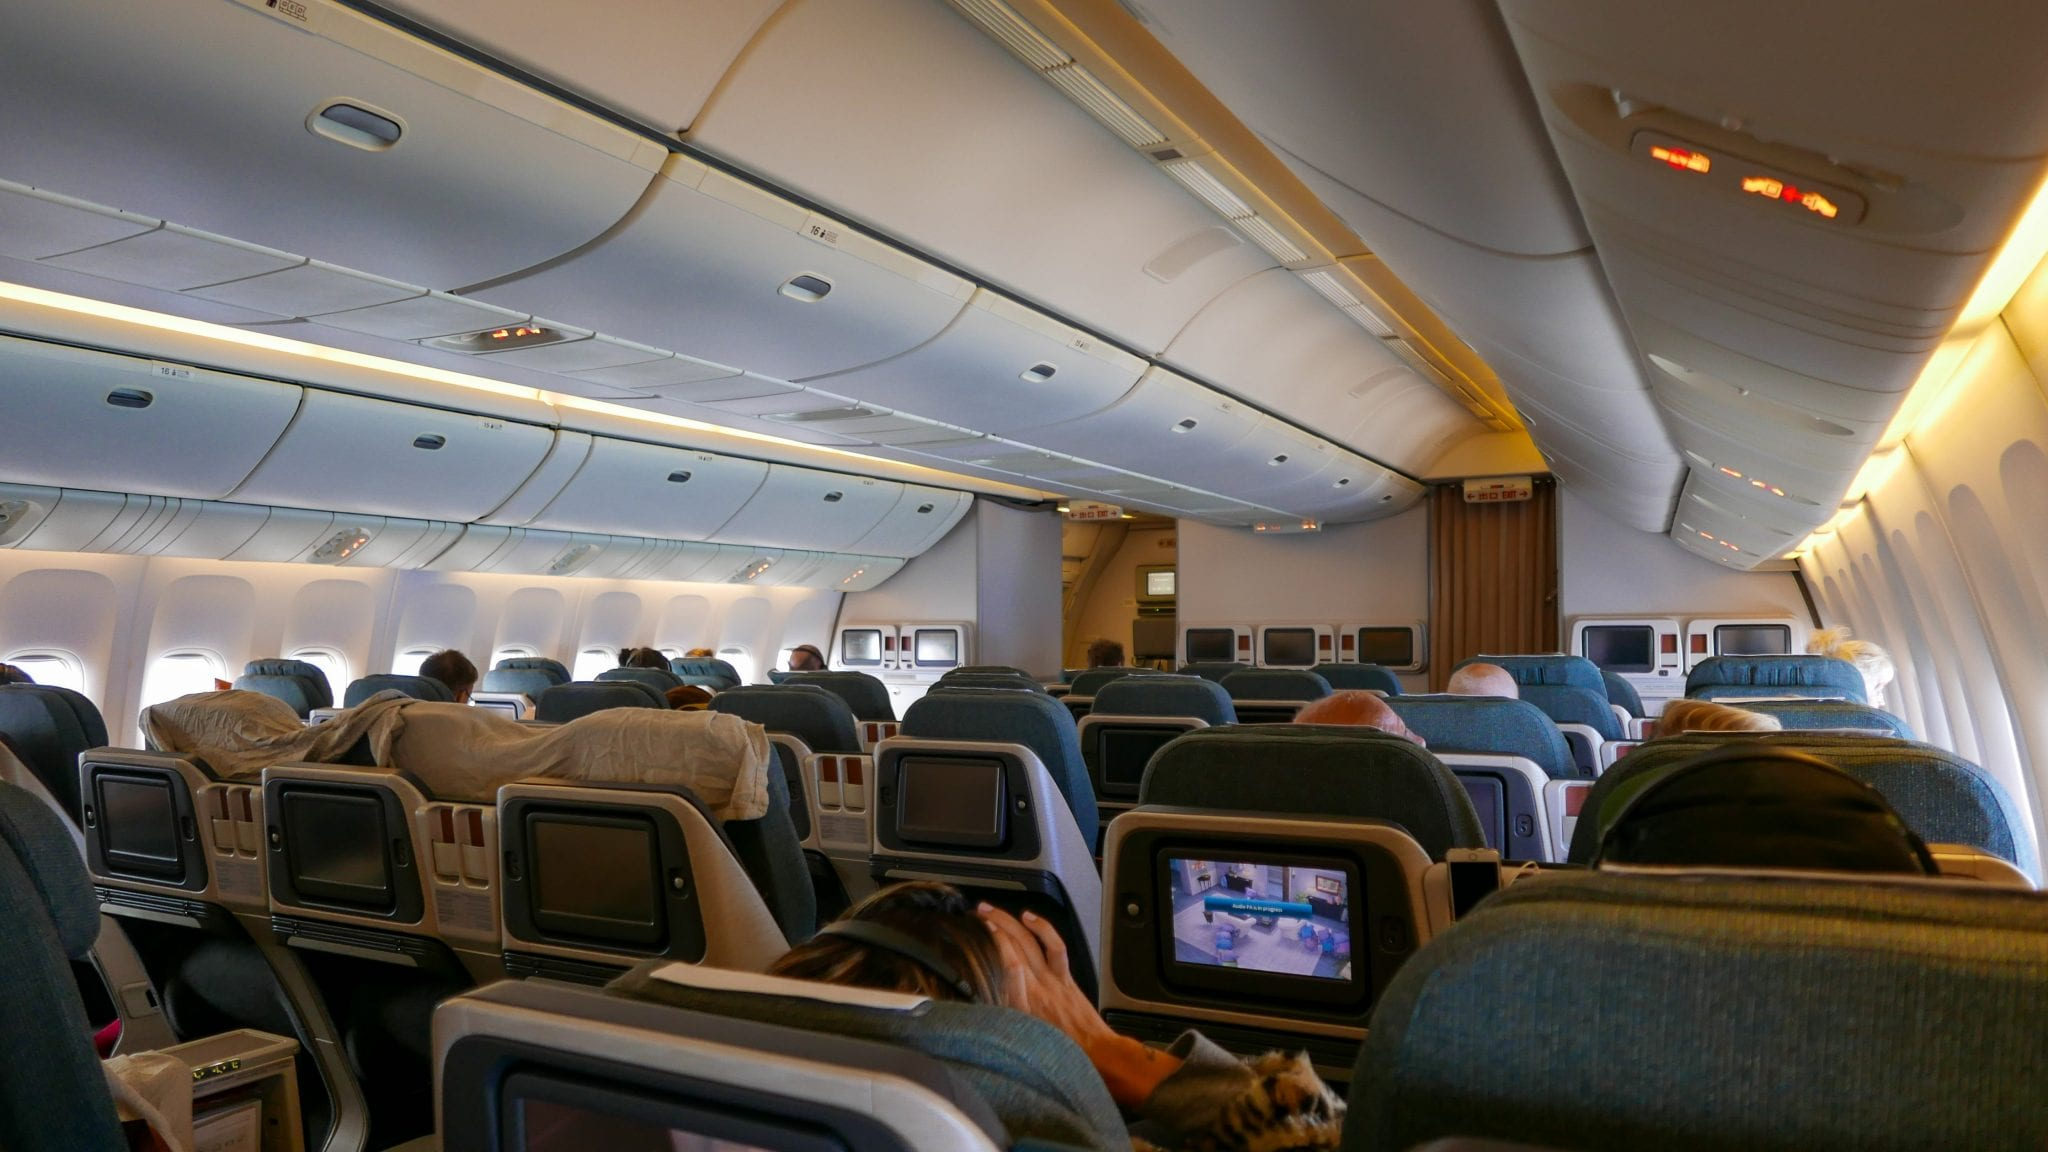 12Cathay Pacific home 9 - REVIEW - Cathay Pacific : Business Class - Bali to Hong Kong (B772)